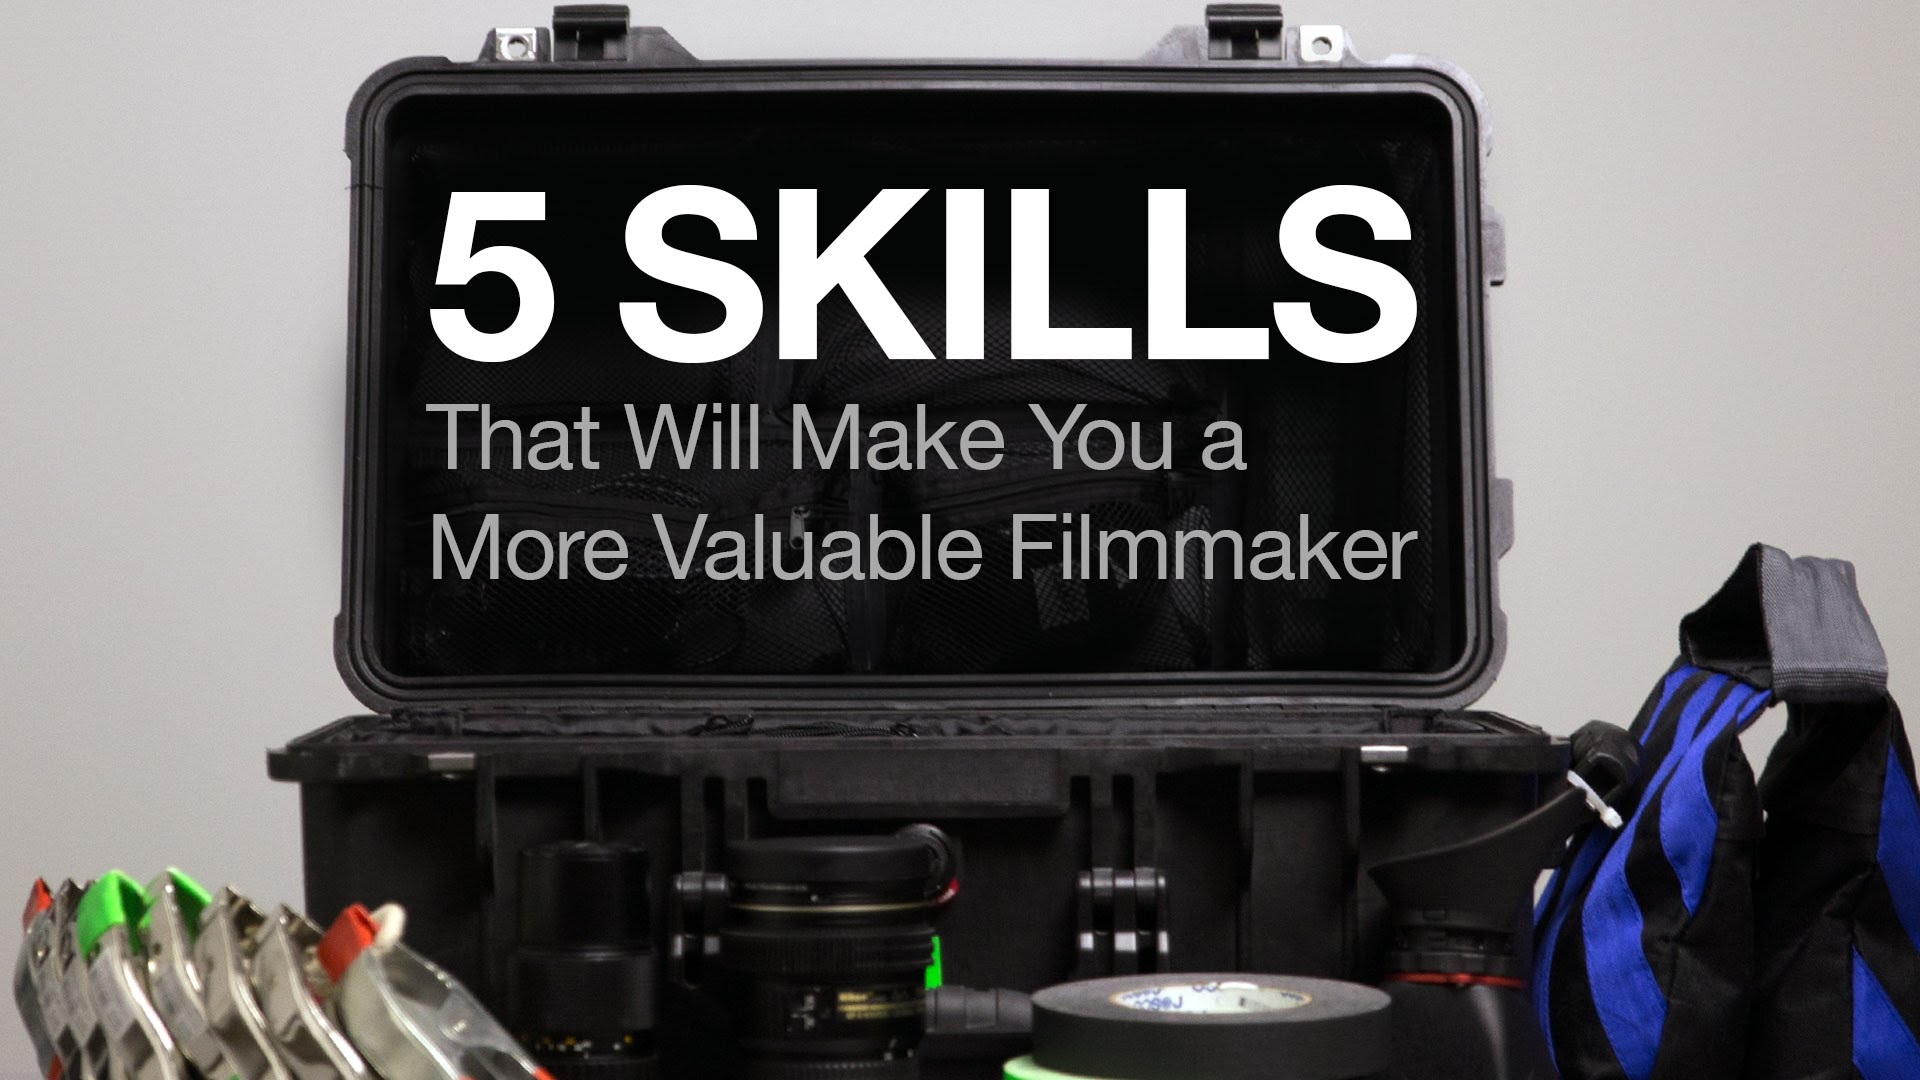 5 Skills That Will Make You a More Valuable Filmmaker